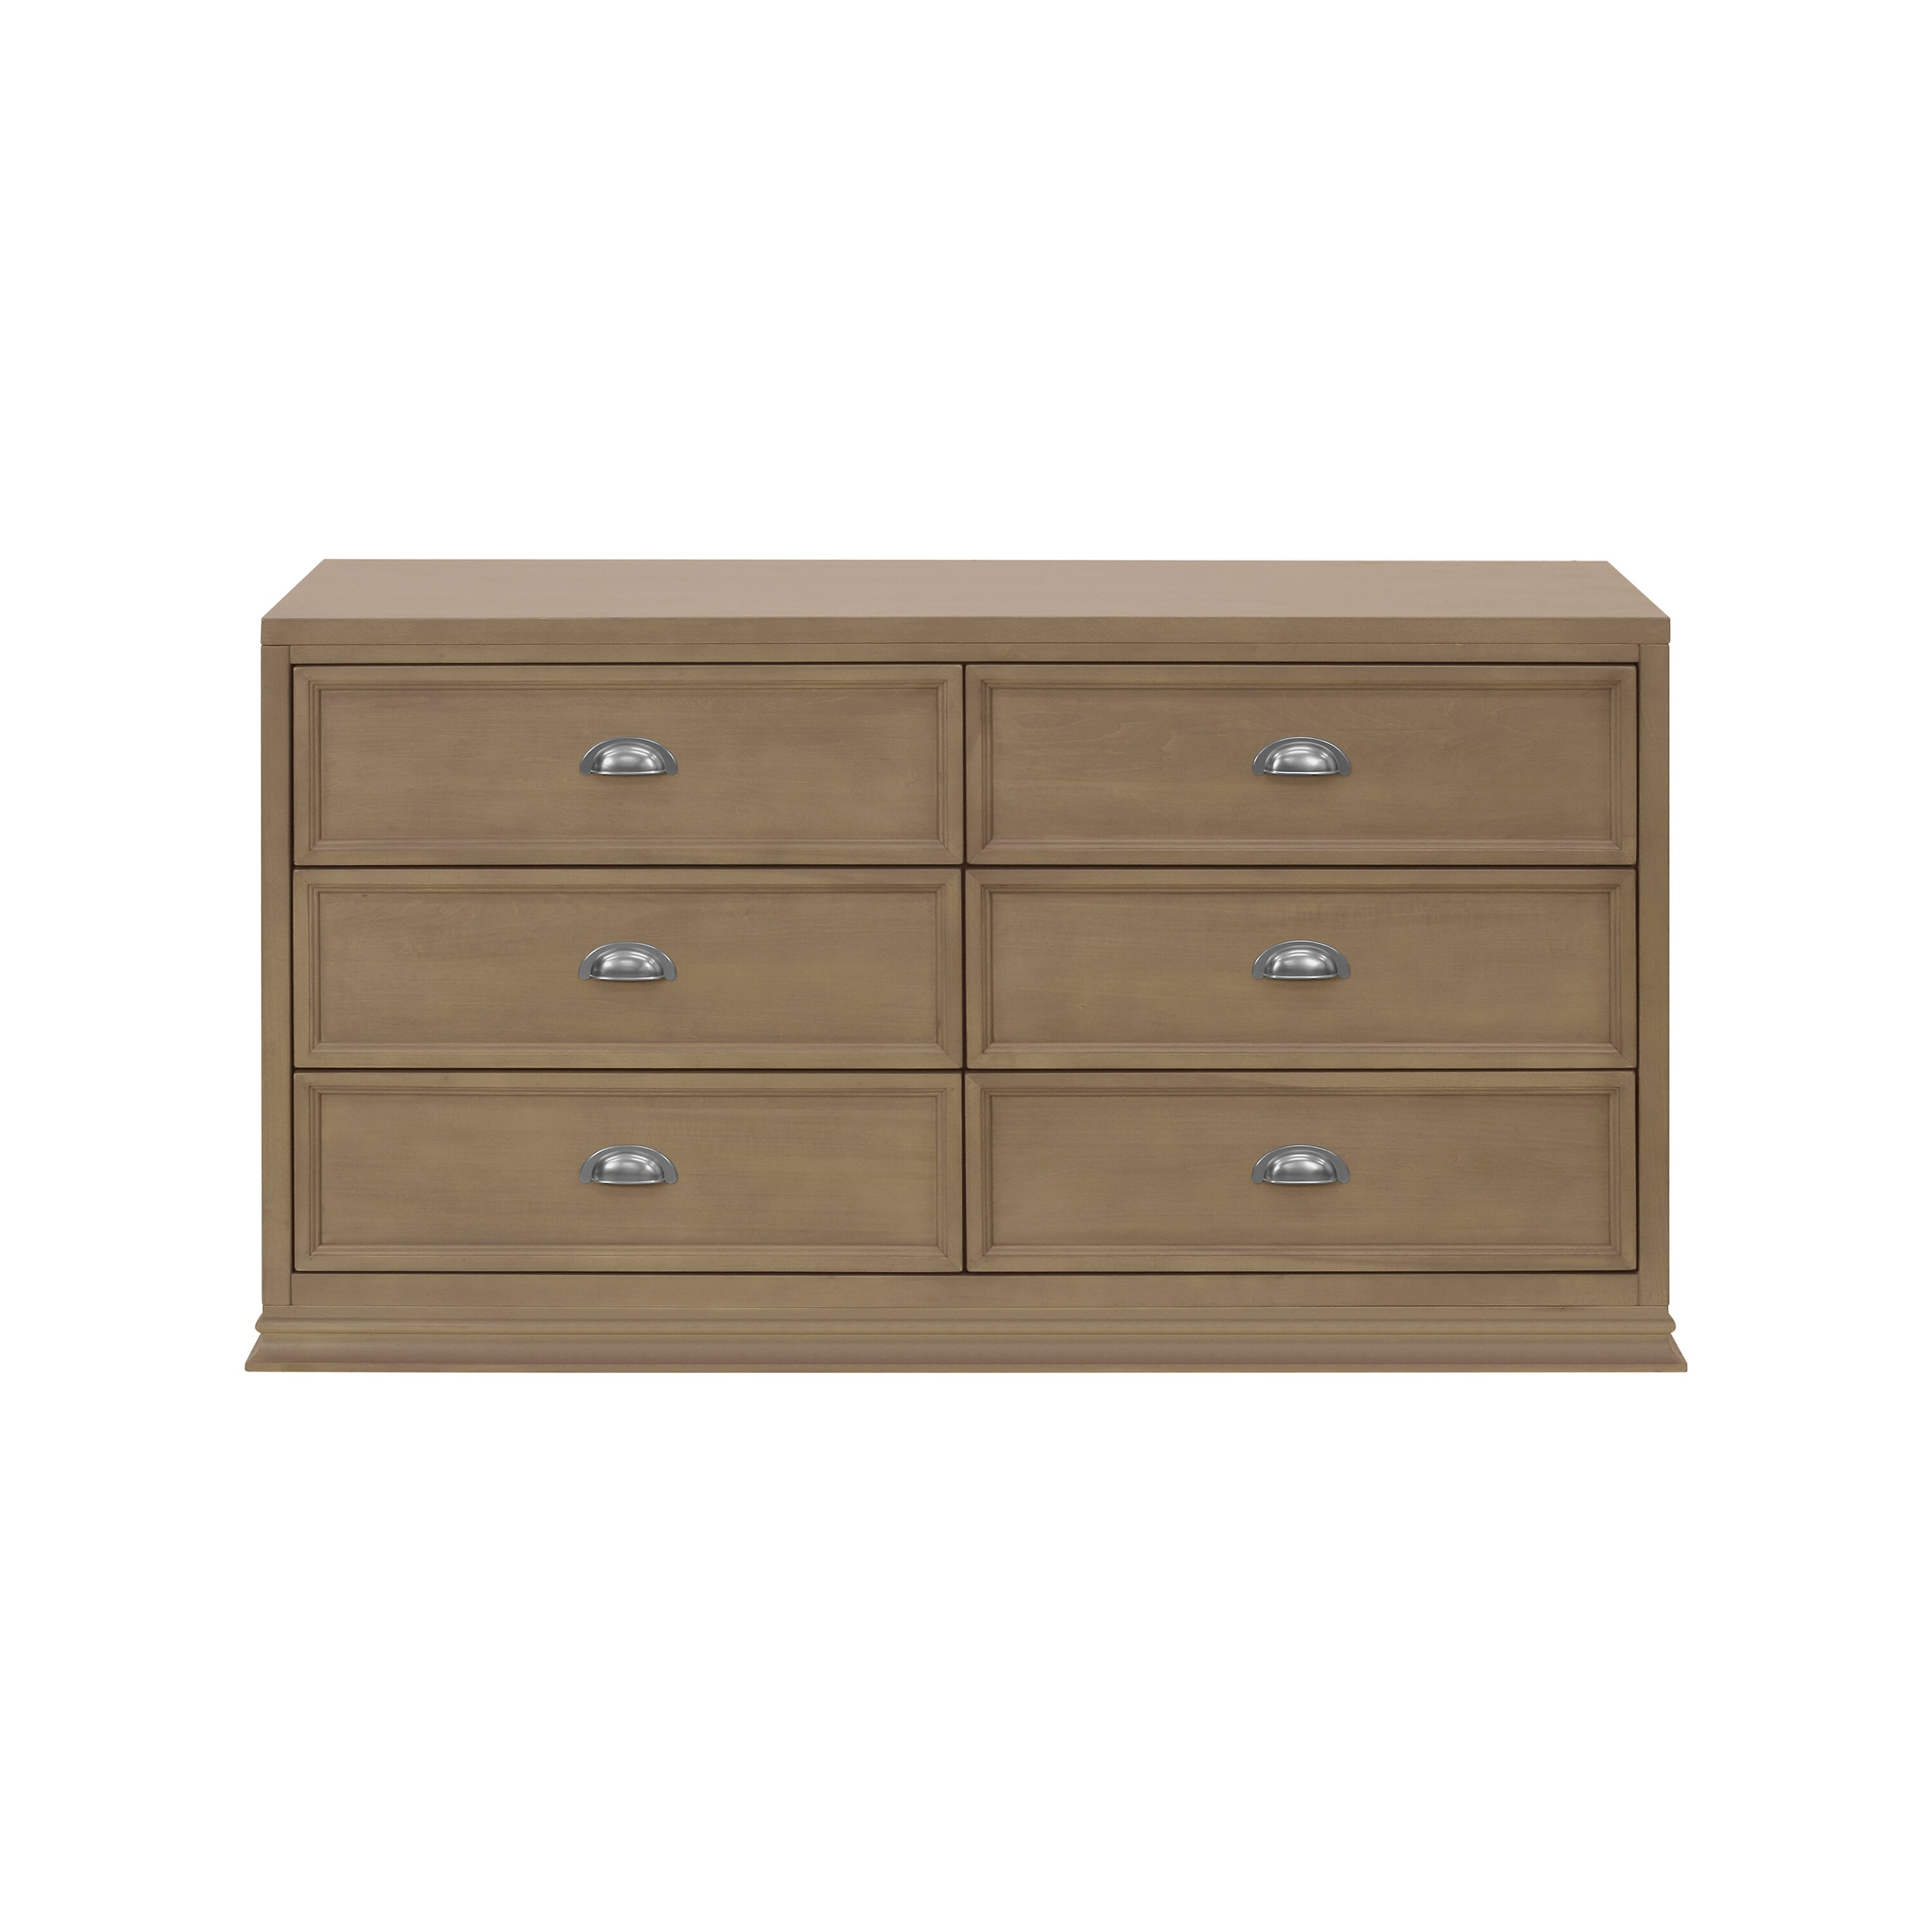 #503D2F Franklin And Ben Mason 6 Drawer Double Dresser & Reviews Wayfair with 3000x3000 px of Brand New 40 Inch Wide Dresser 30003000 pic @ avoidforclosure.info